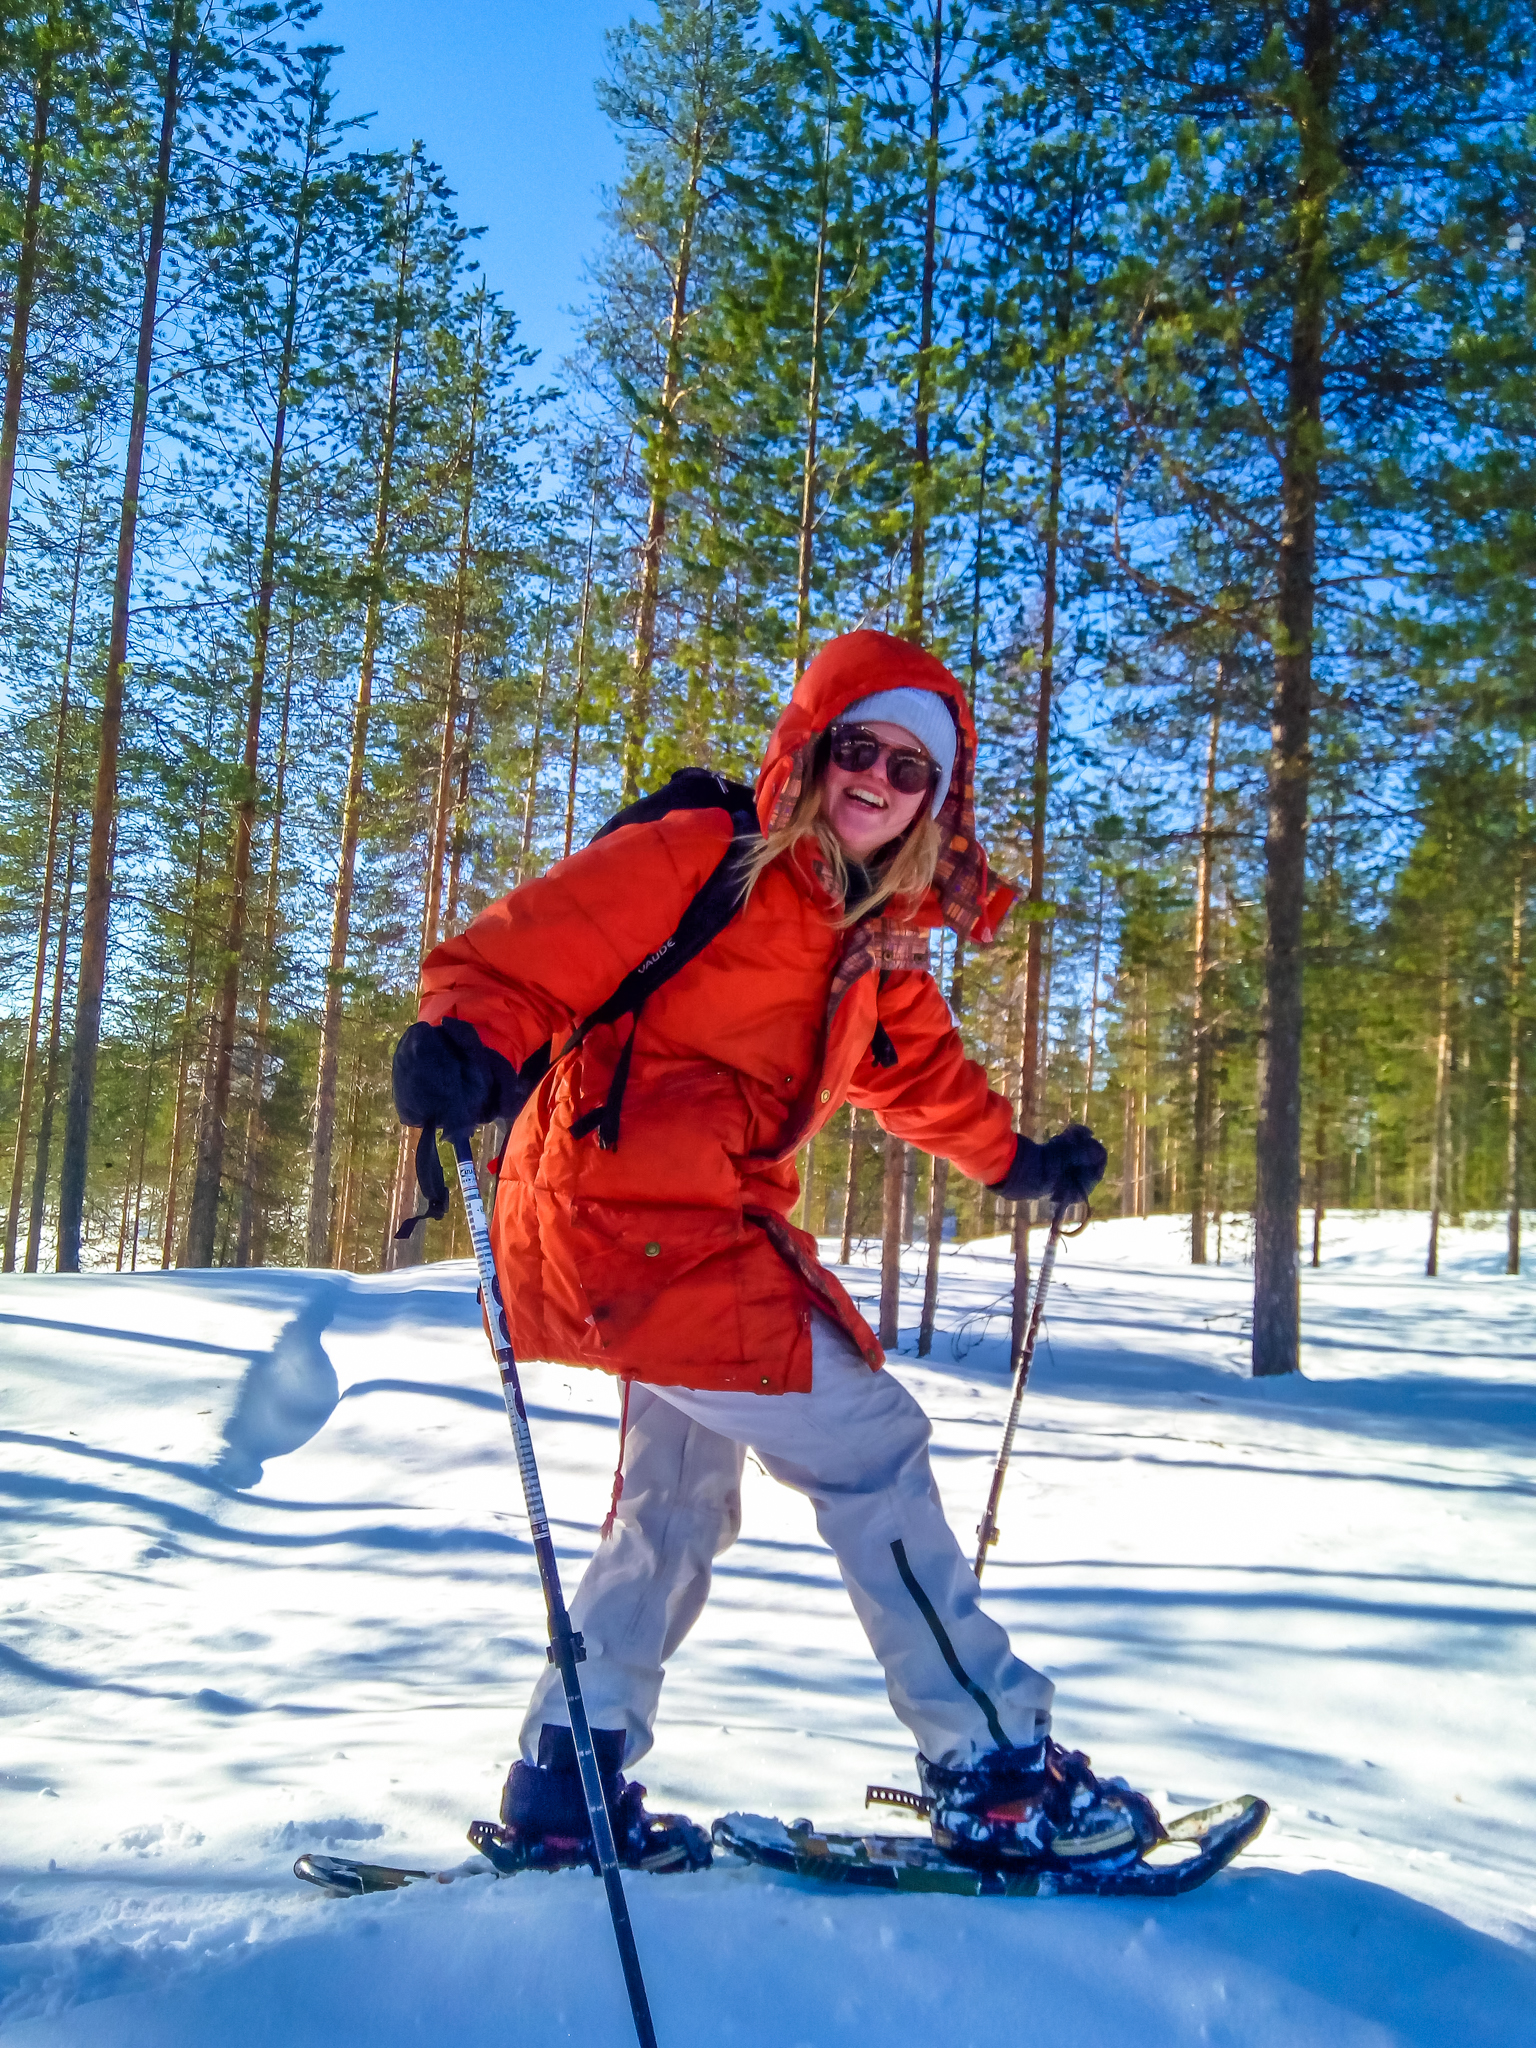 Snowshoeing fun in the forest